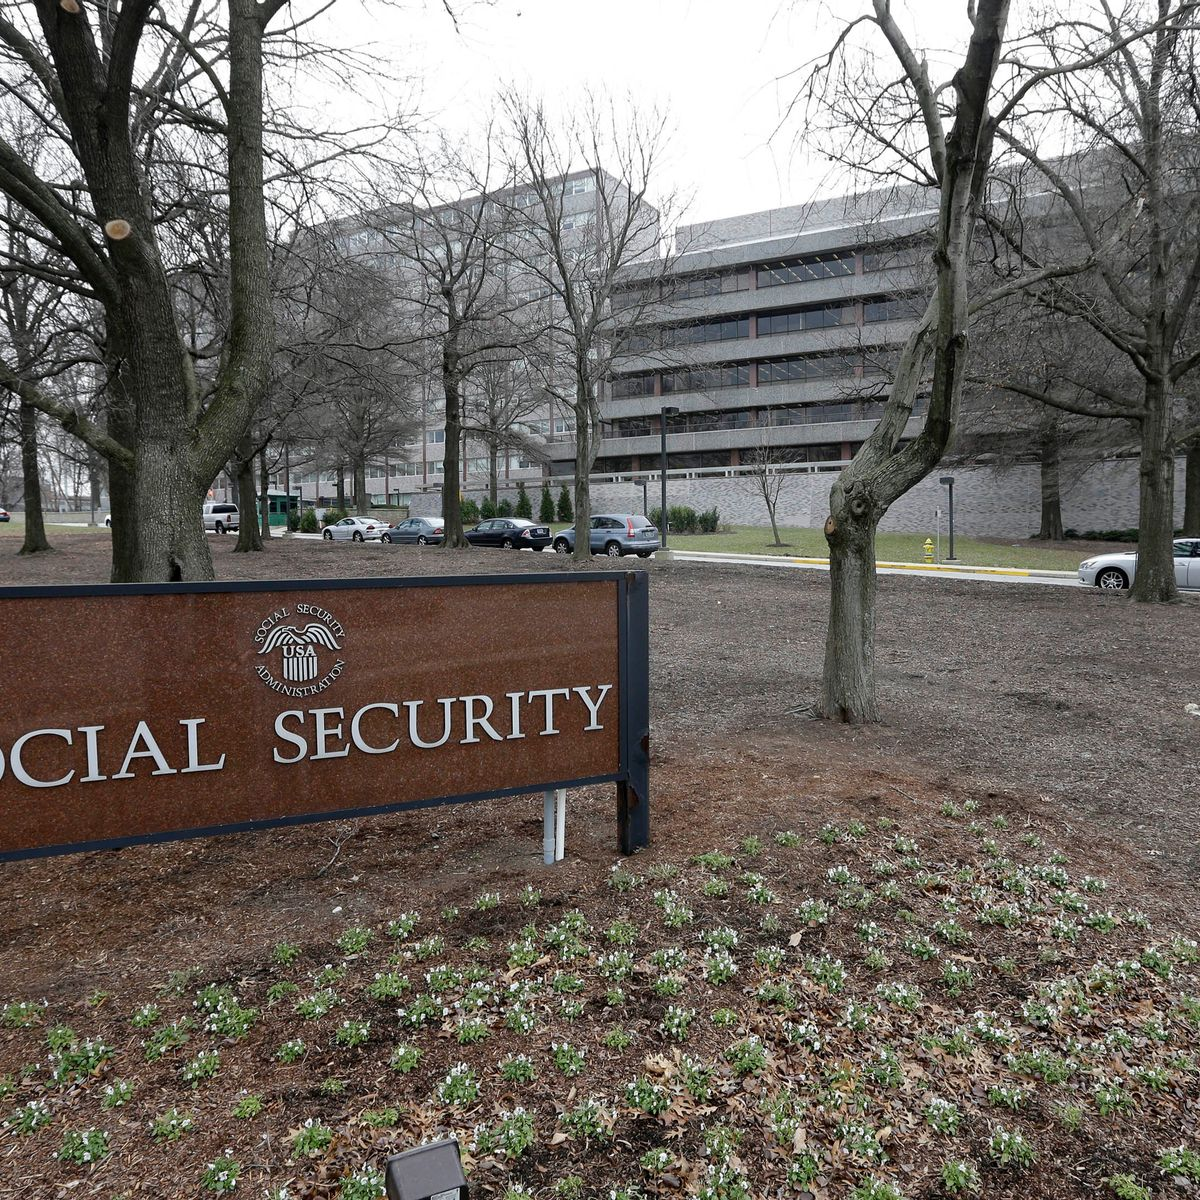 The Trump administration has just declared war on Social Security